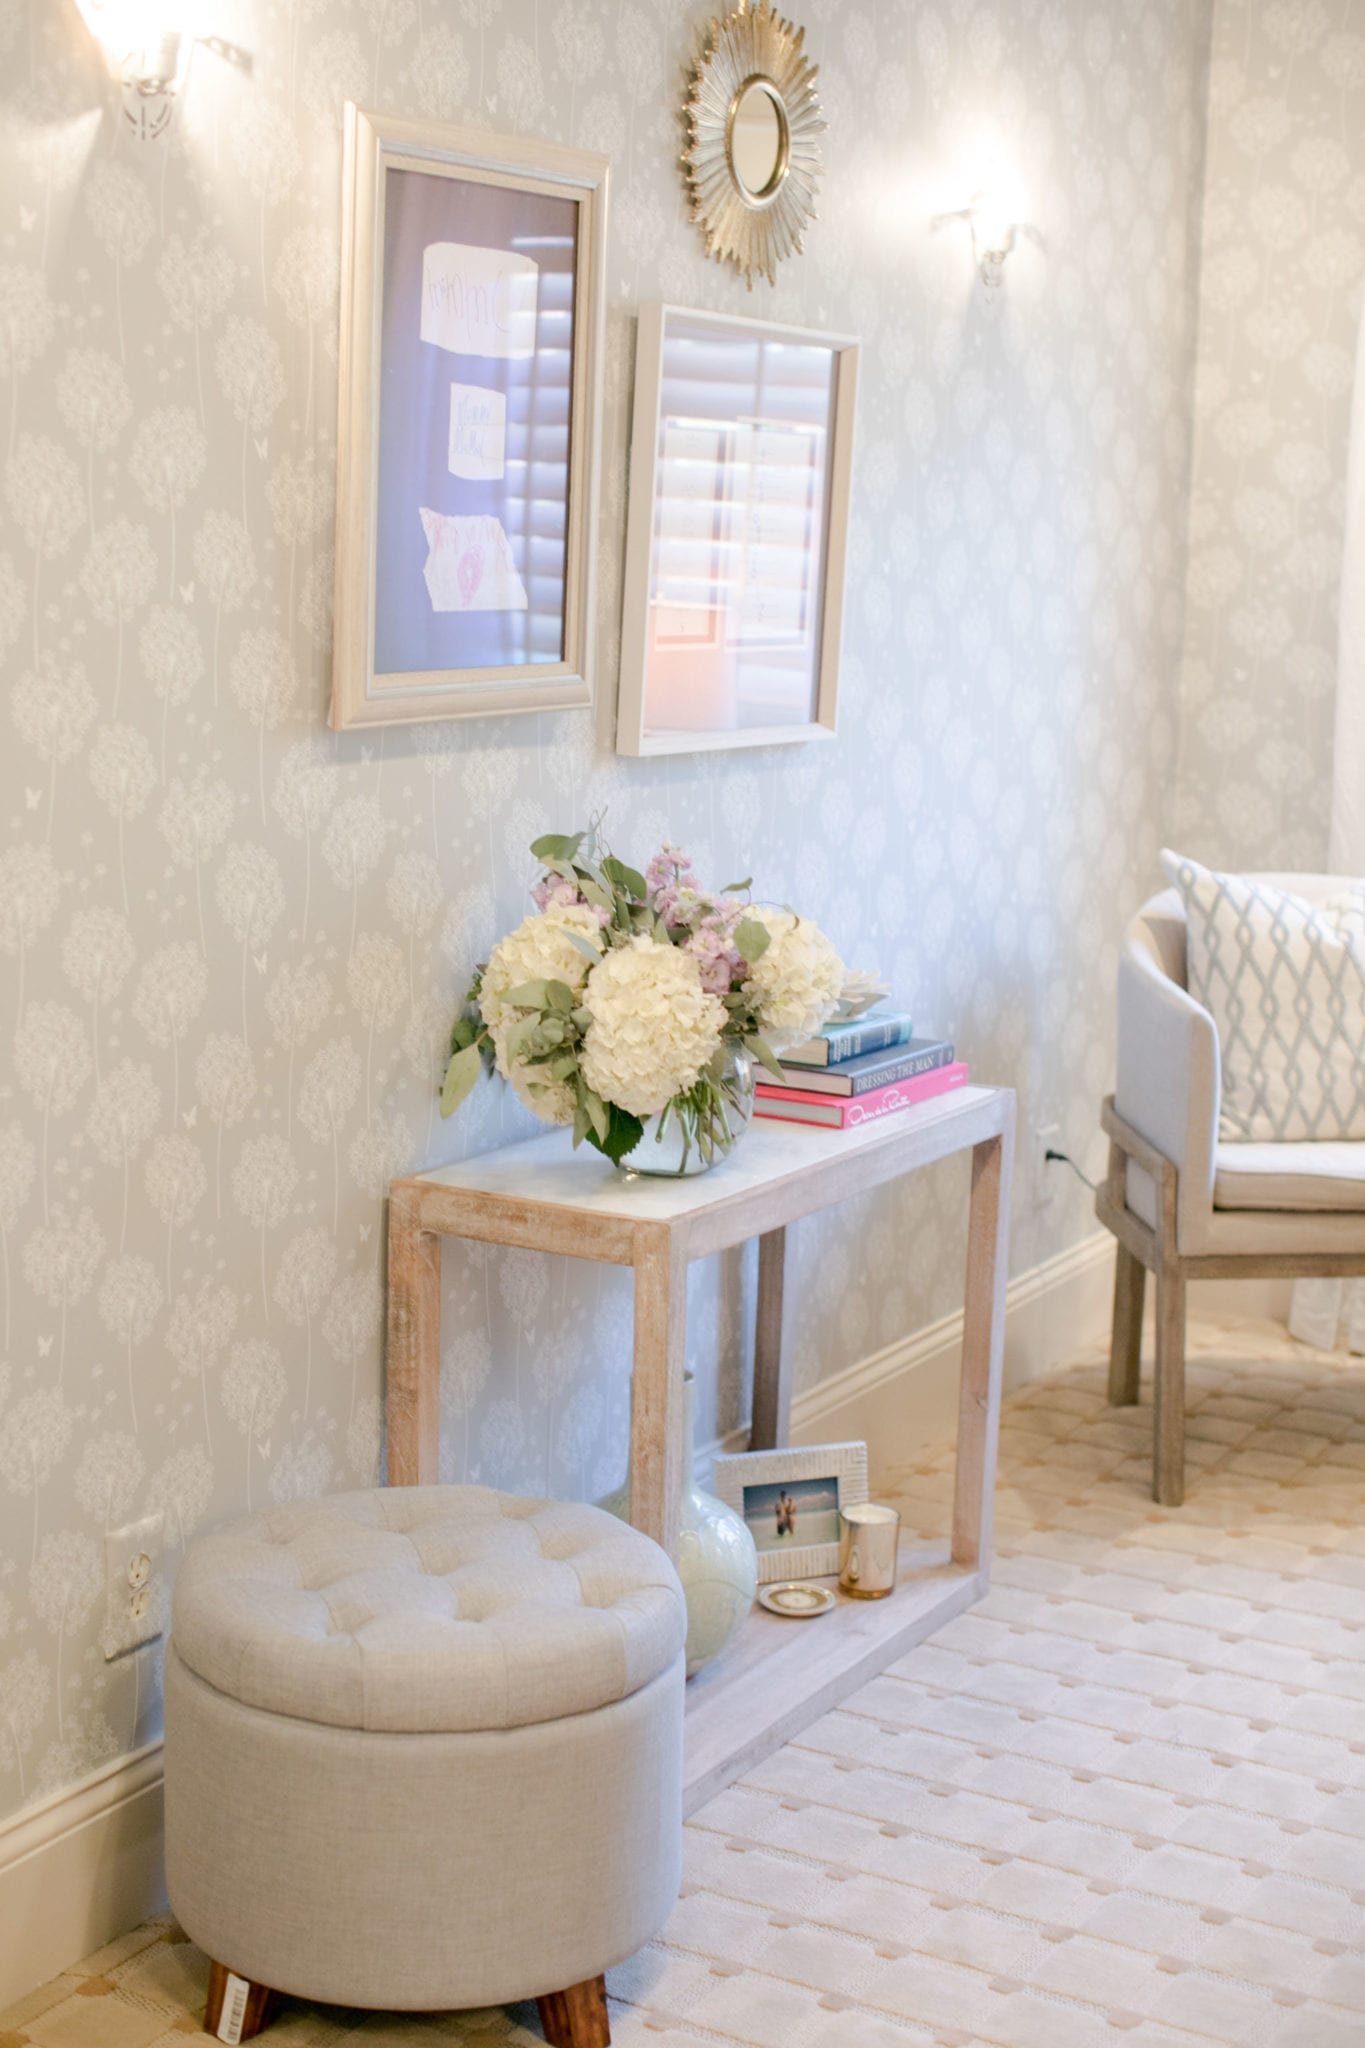 Removable Wallpaper in upstairs office with gray and white marble decor.